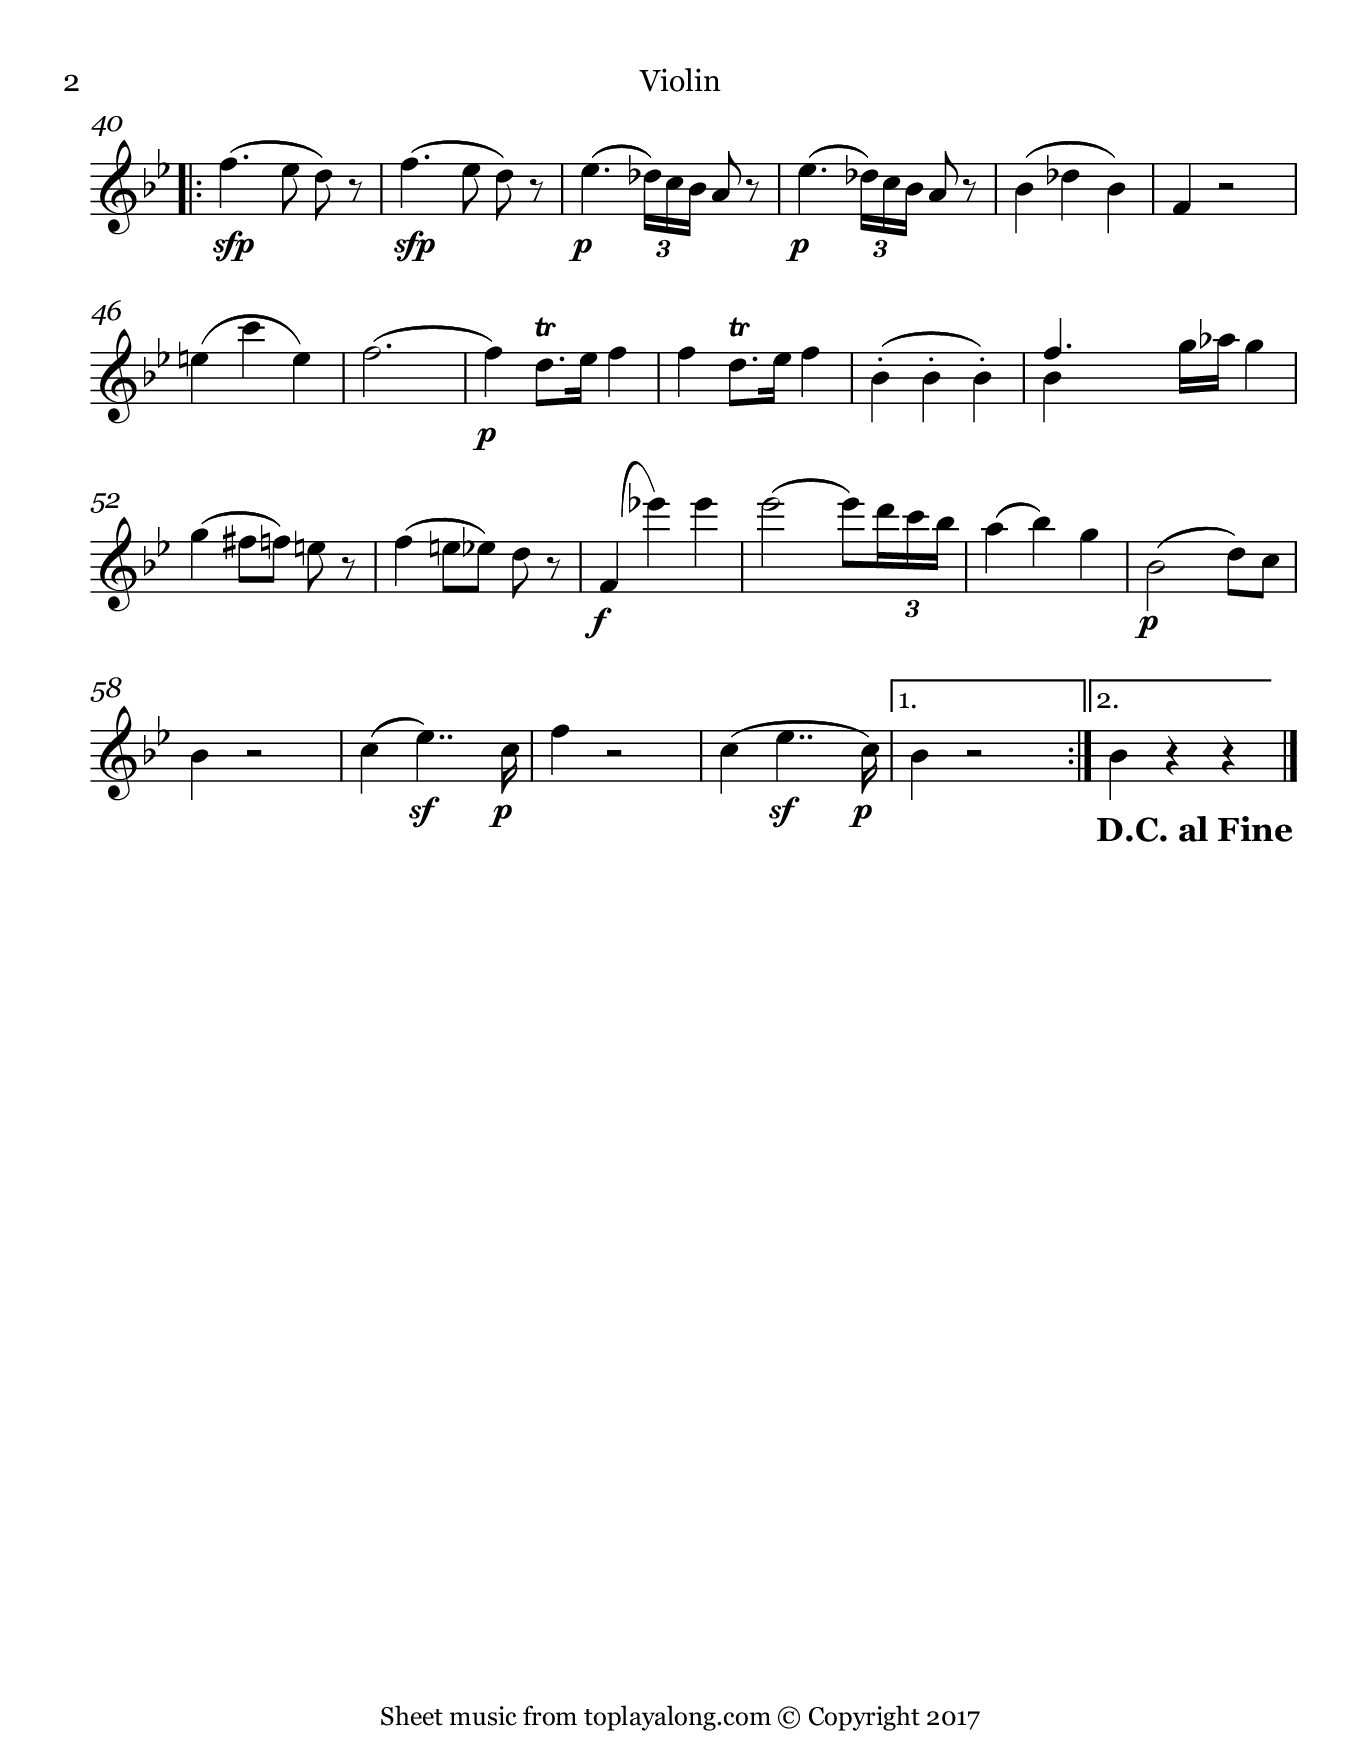 String Quartet No. 17 (II. Menuetto & Trio) by Mozart. Sheet music for Violin, page 2.